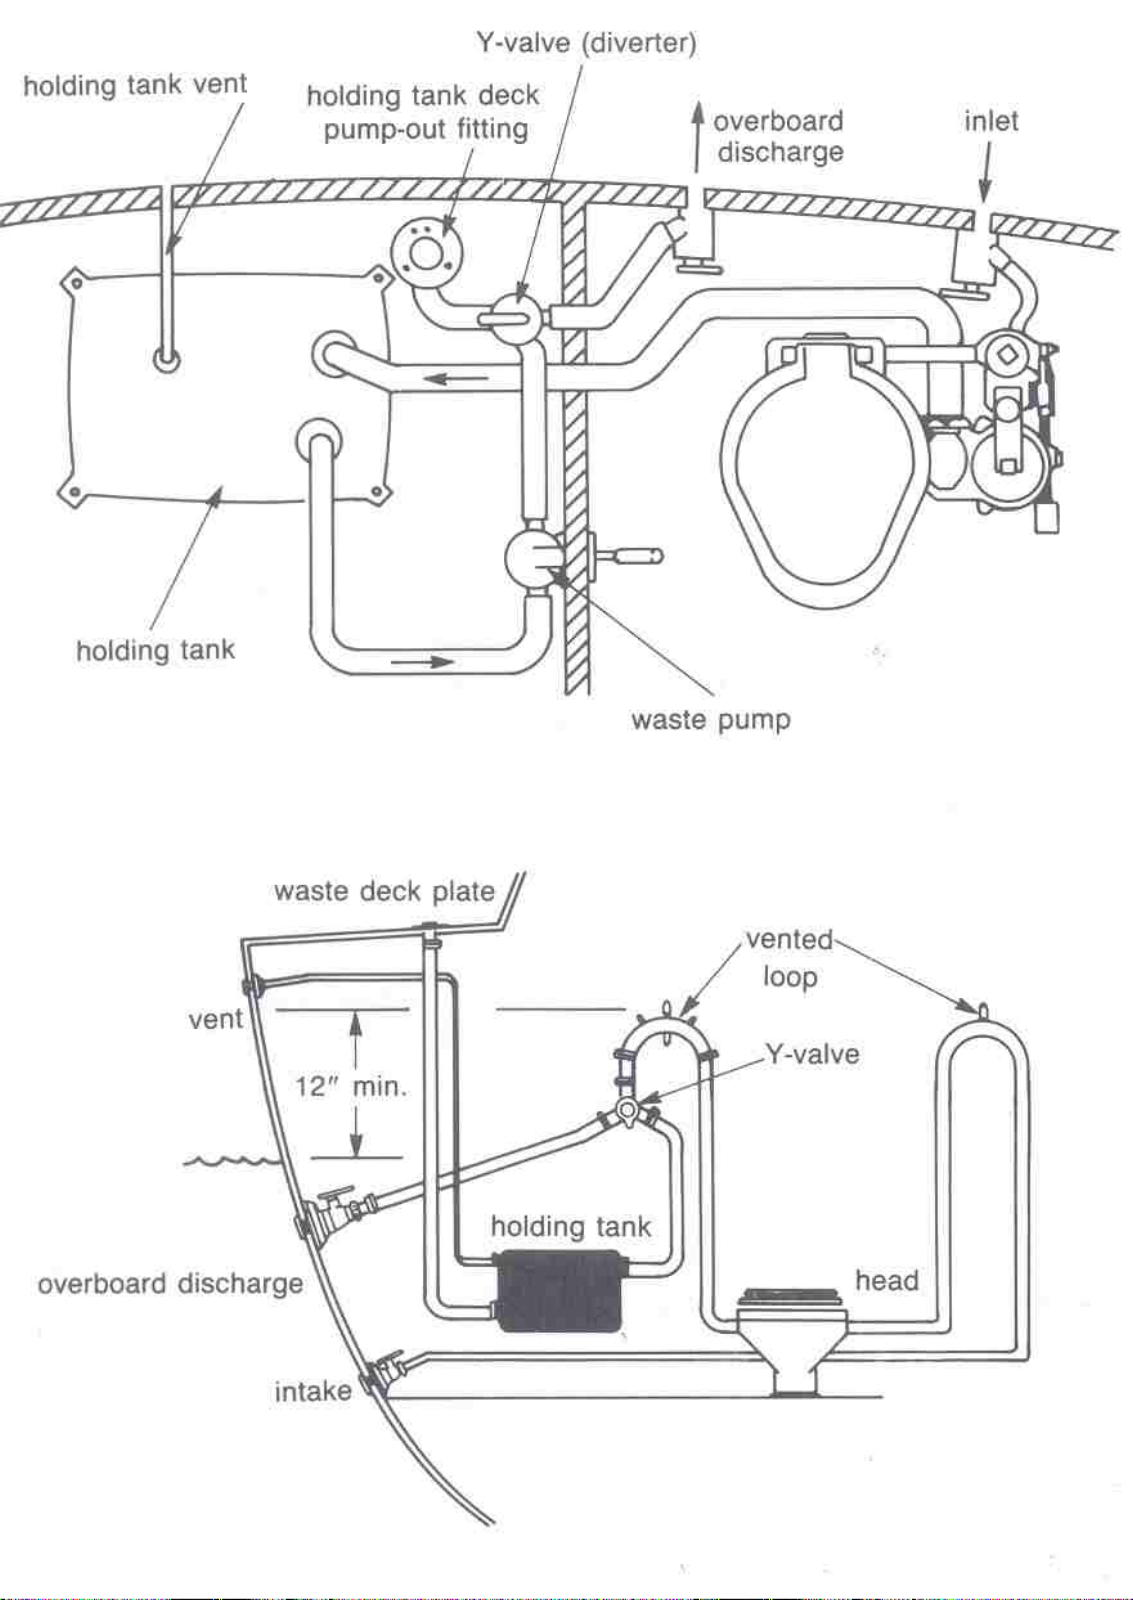 Plumbing Toilet Drain Diagram Likewise Schematic Boat Head Wiring Diagrams Help Page 2 Cruisers Livewell Valve Area